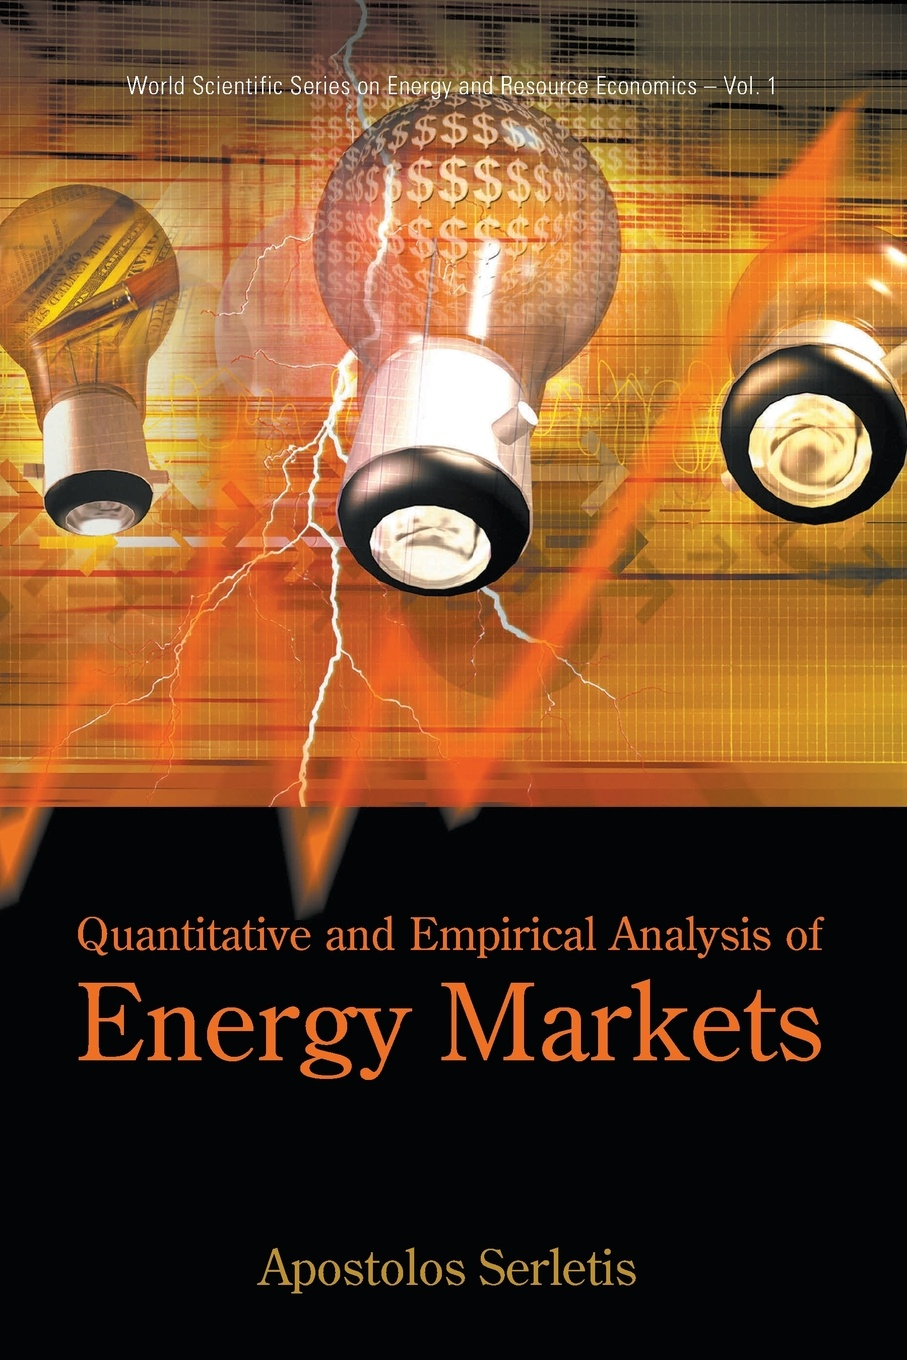 Apostolos Serletis QUANTITATIVE AND EMPIRICAL ANALYSIS OF ENERGY MARKETS halil kiymaz market microstructure in emerging and developed markets price discovery information flows and transaction costs